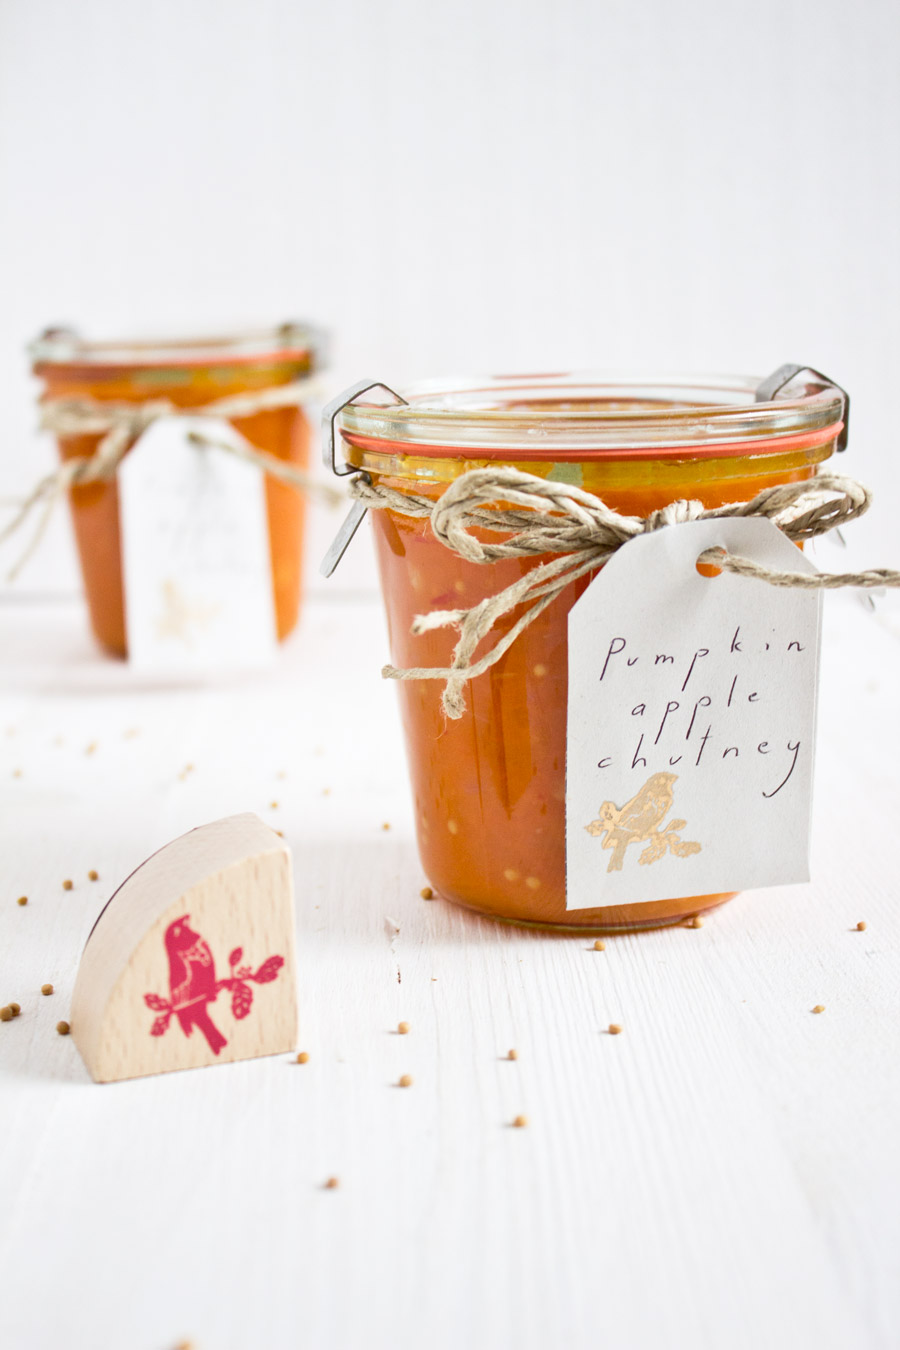 easy-pumpkin-ginger-chutney-recipe